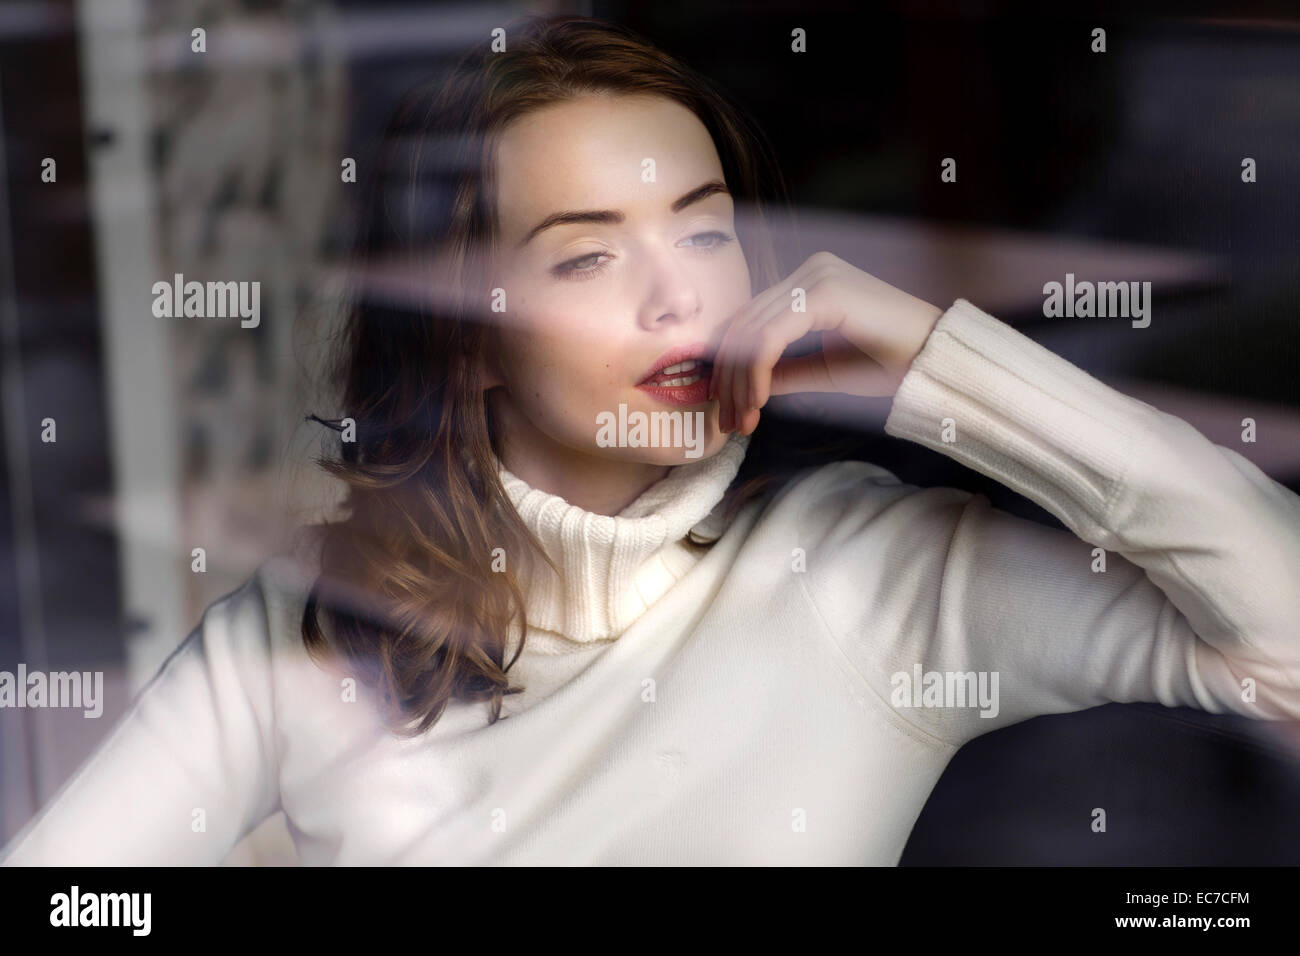 Portrait of pensive young woman looking through window pane of a cafe - Stock Image